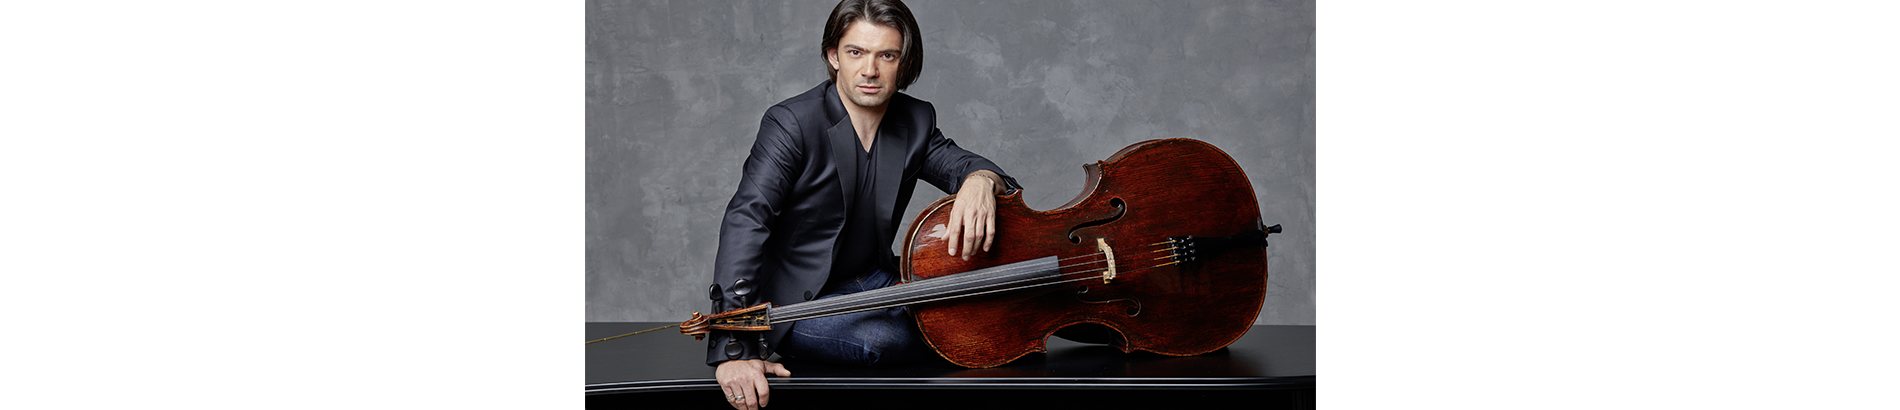 The concert of laureates (1) – Under the direction of Gautier Capuçon